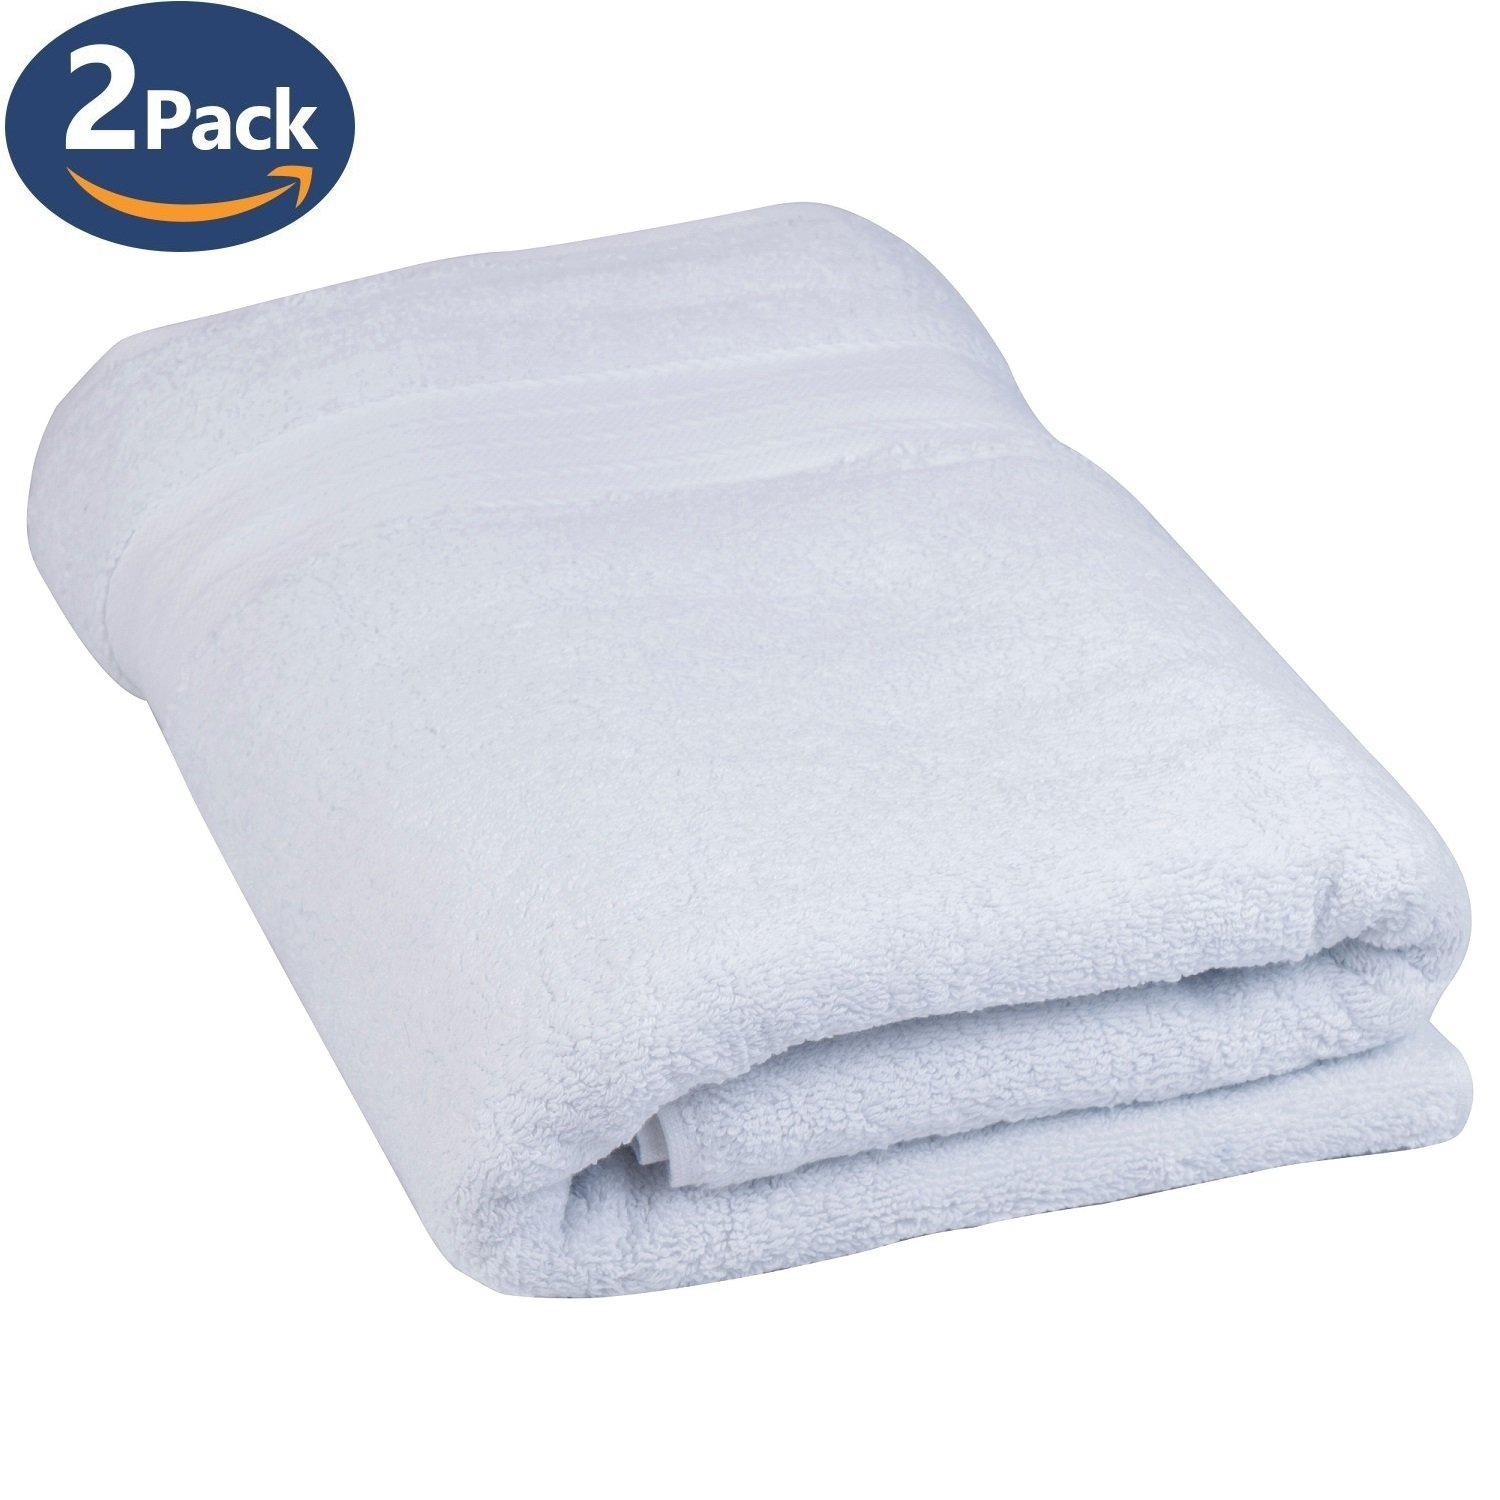 1,000 GSM Fast Drying Extra Large White Bath Sheets, Premium Turkish Cotton Towels, White With Luxury Striped Dobby - 30